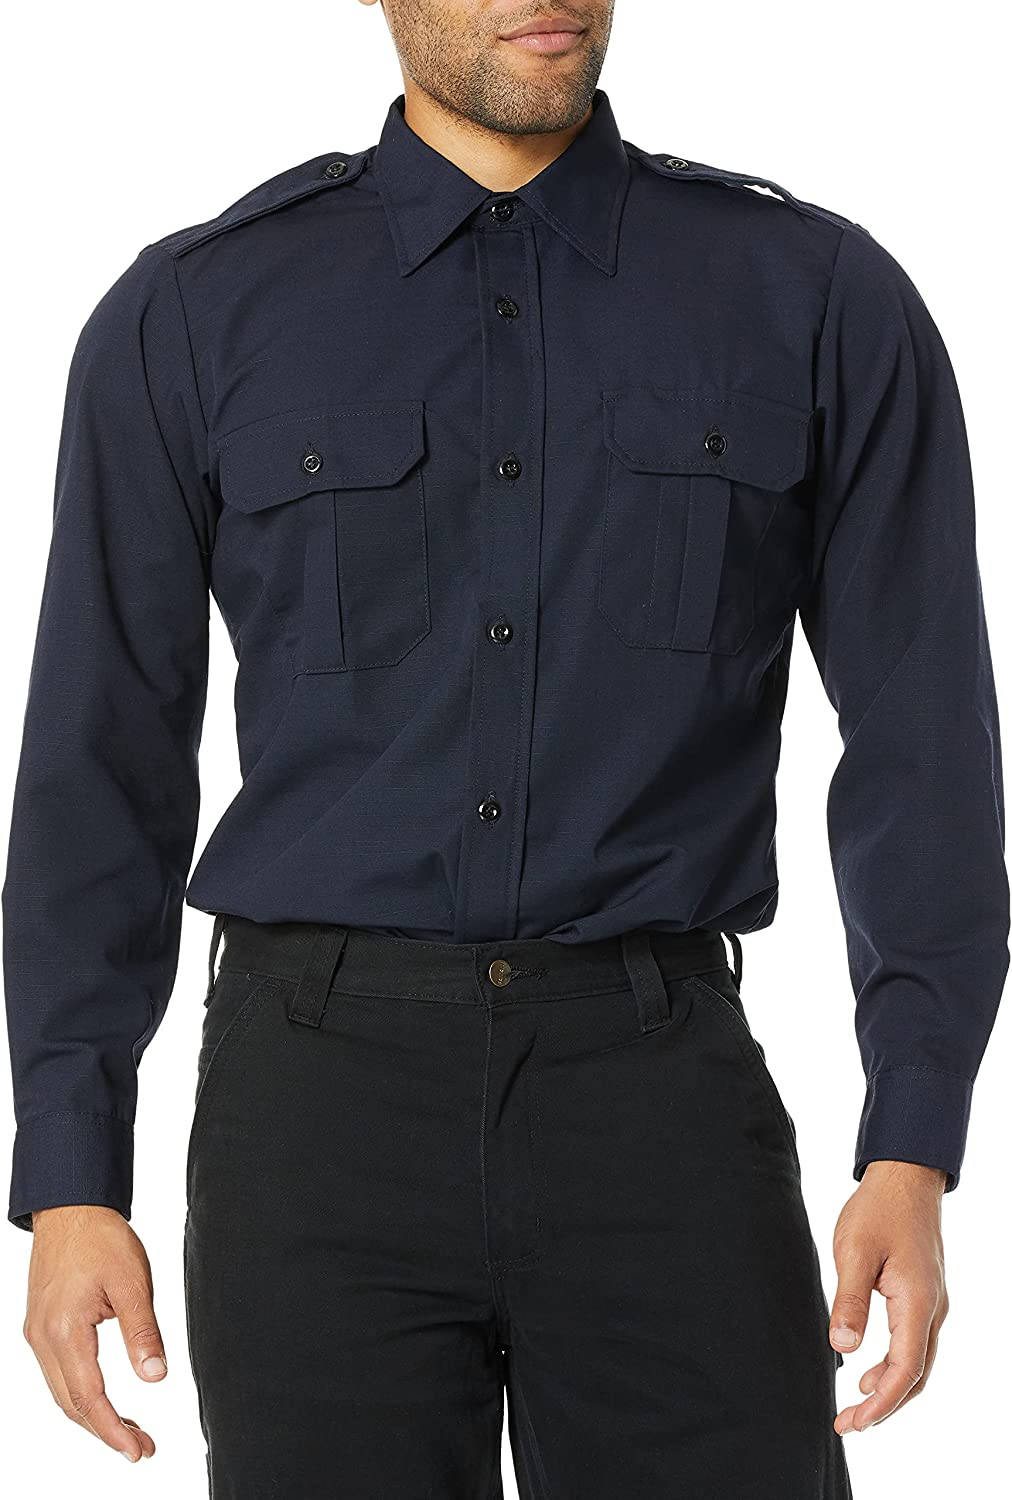 Propper Men's Long Sleeve Tactical Award-winning store Dress Shirt We OFFer at cheap prices La 3X Navy Lapd